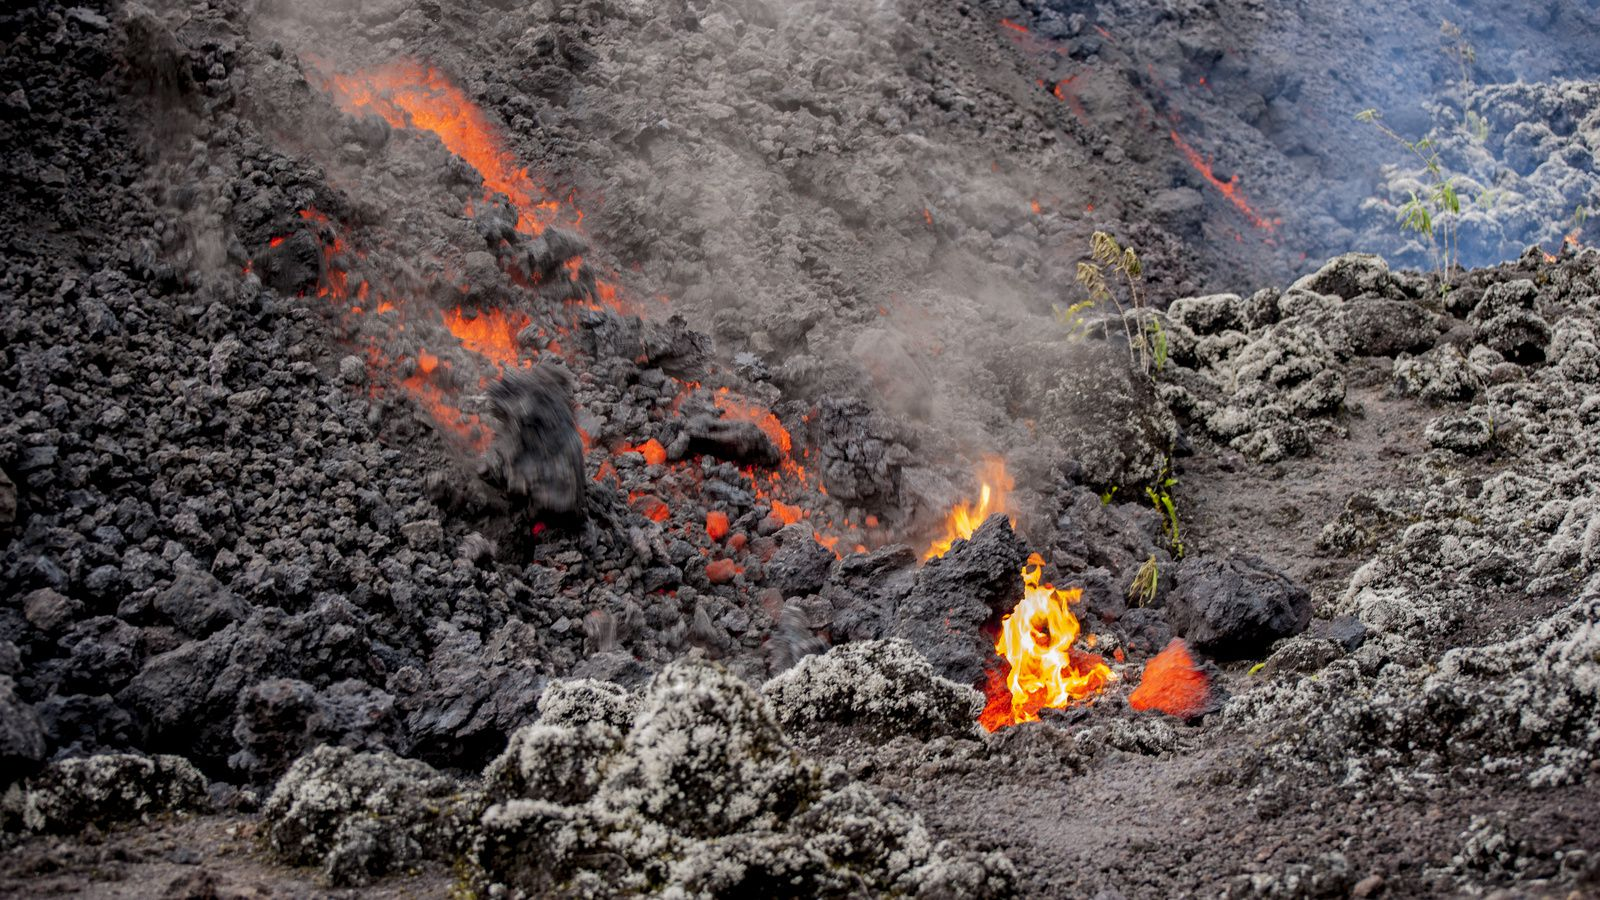 Piton de La Fournaise - the lava front is animated by the rolling blocks - photo © Thierry Sluys 26.10.2019